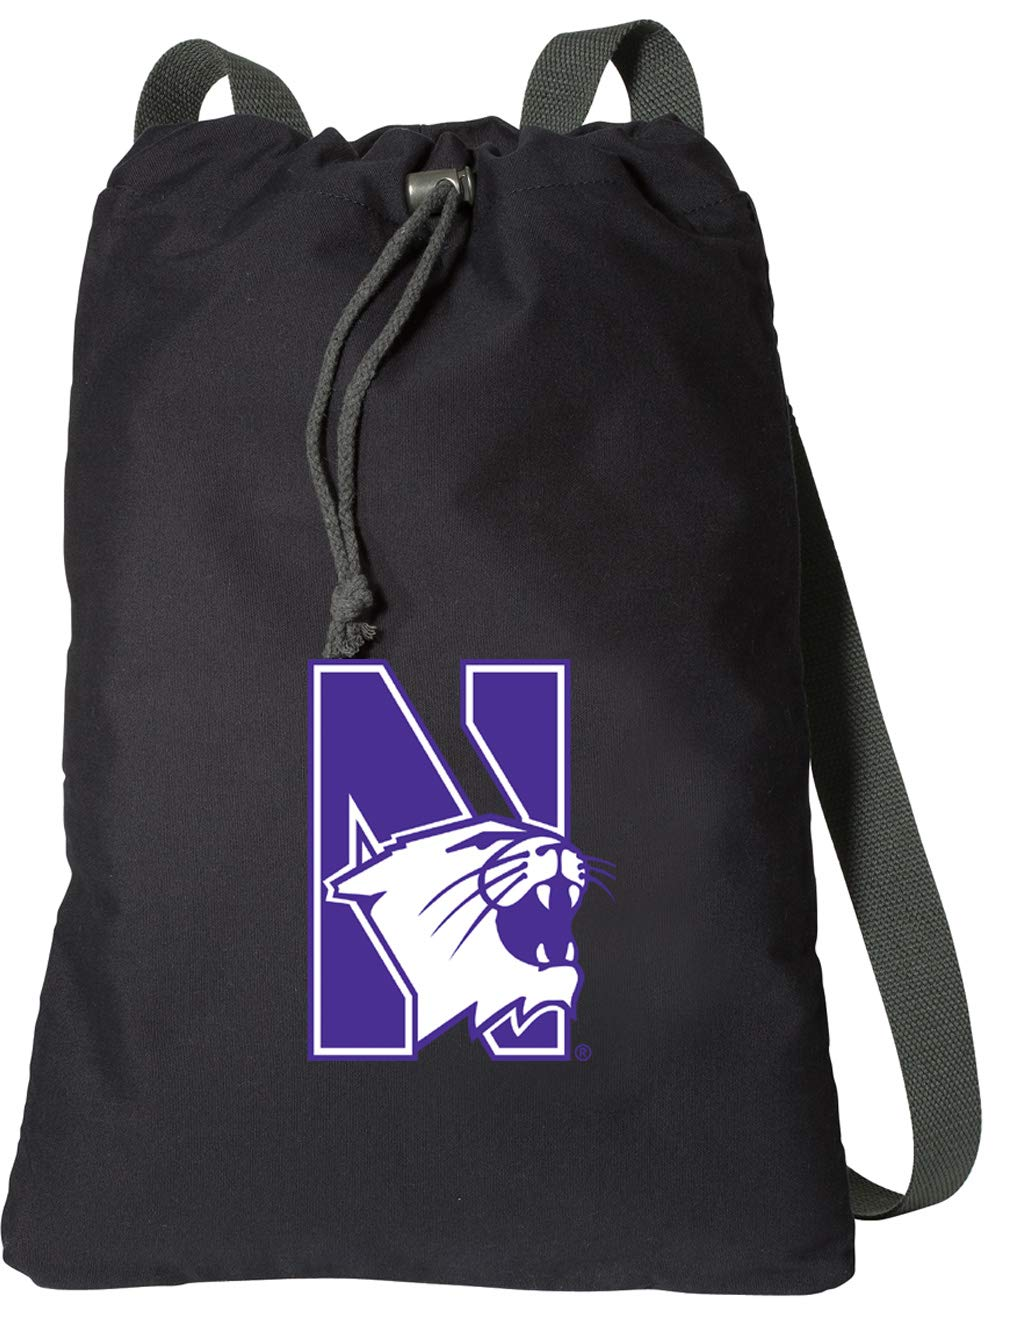 Broad Bay Northwestern University Drawstring Backpack Rich Canvas Northwestern Wildcats Cinch Bag